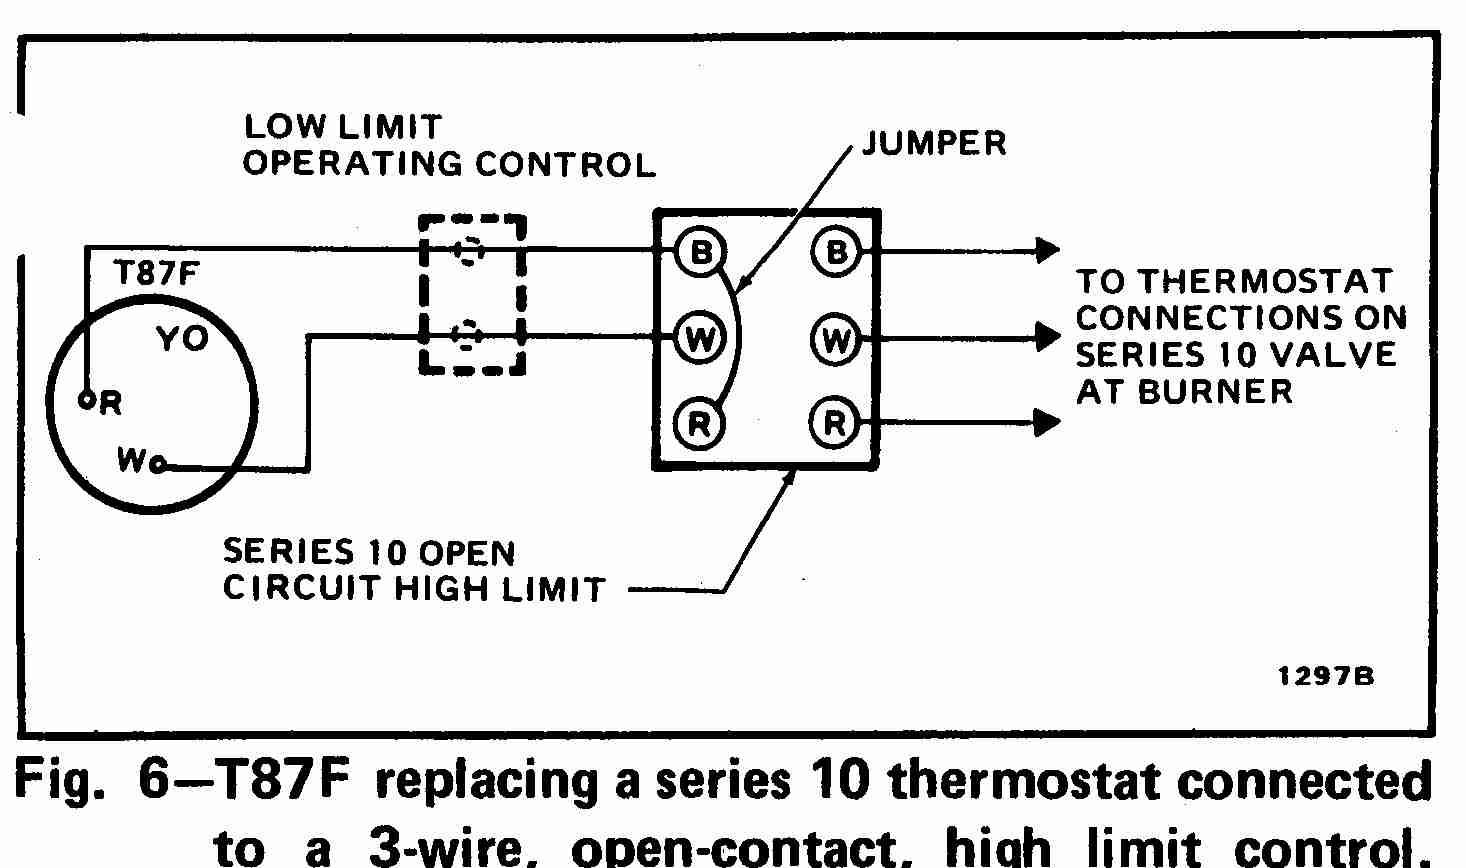 TT_T87F_0002_3WHL_DJF room thermostat wiring diagrams for hvac systems imit boiler thermostat wiring diagram at soozxer.org